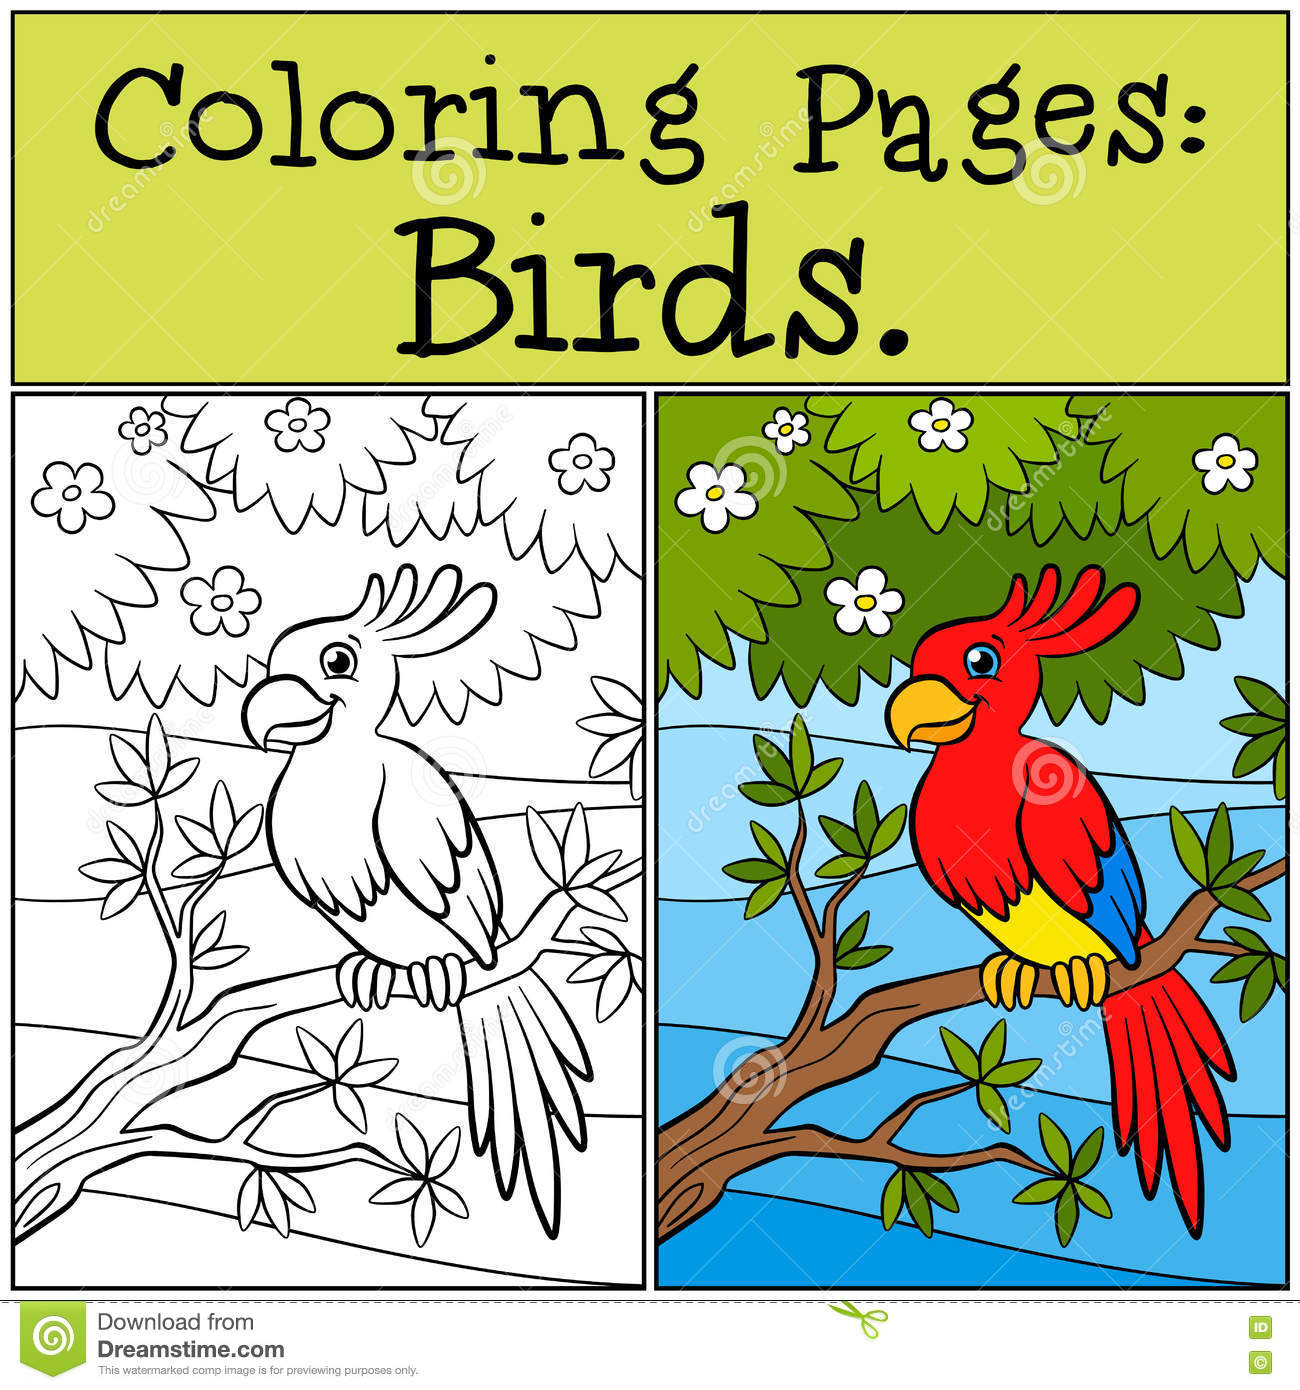 Coloring Pages: Birds. Little Cute Parrot. Stock Vector ...